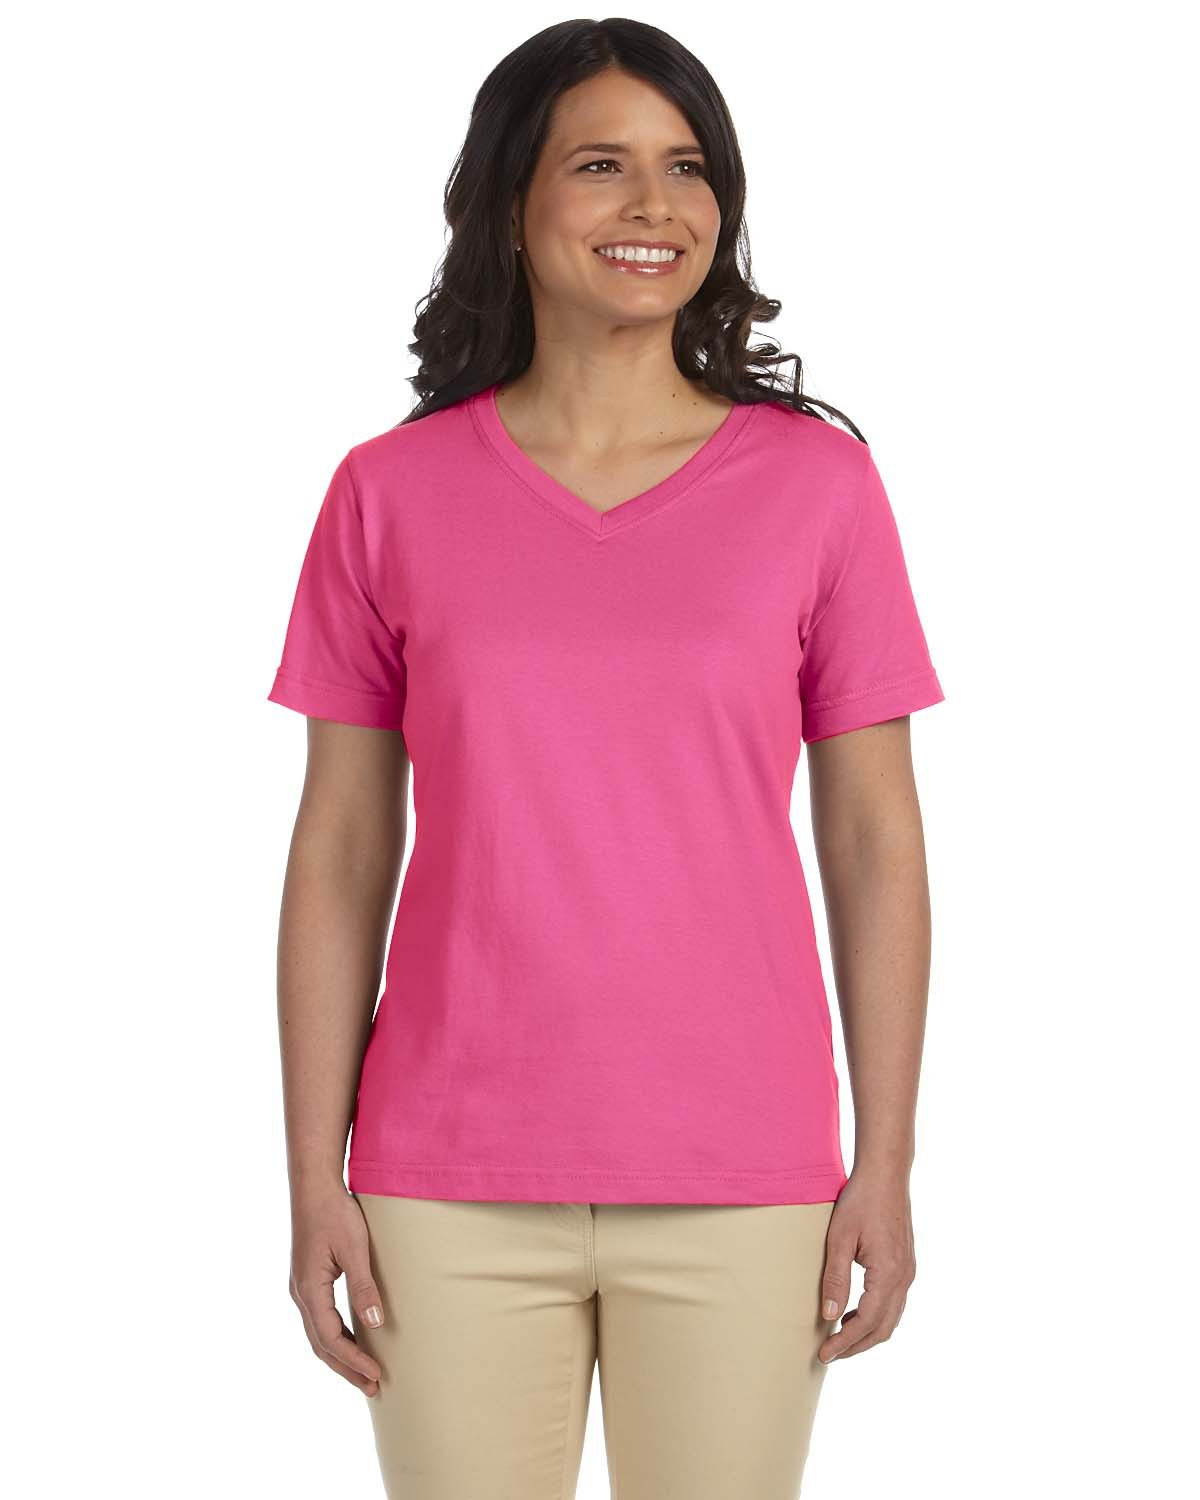 LAT Ladies' Premium Jersey V-Neck T-Shirt RASPBERRY